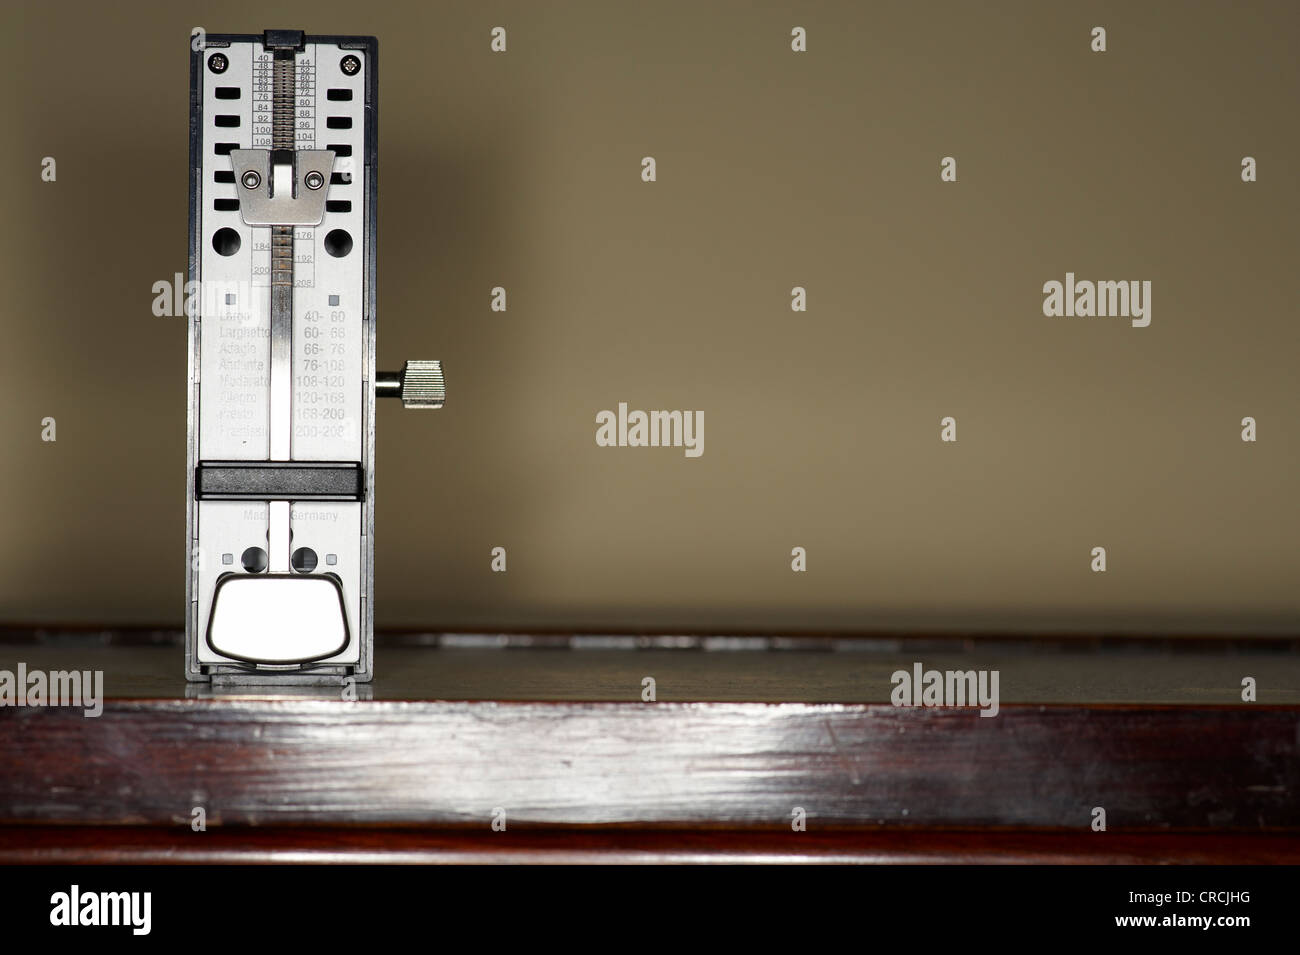 Metronome standing on a piano - Stock Image